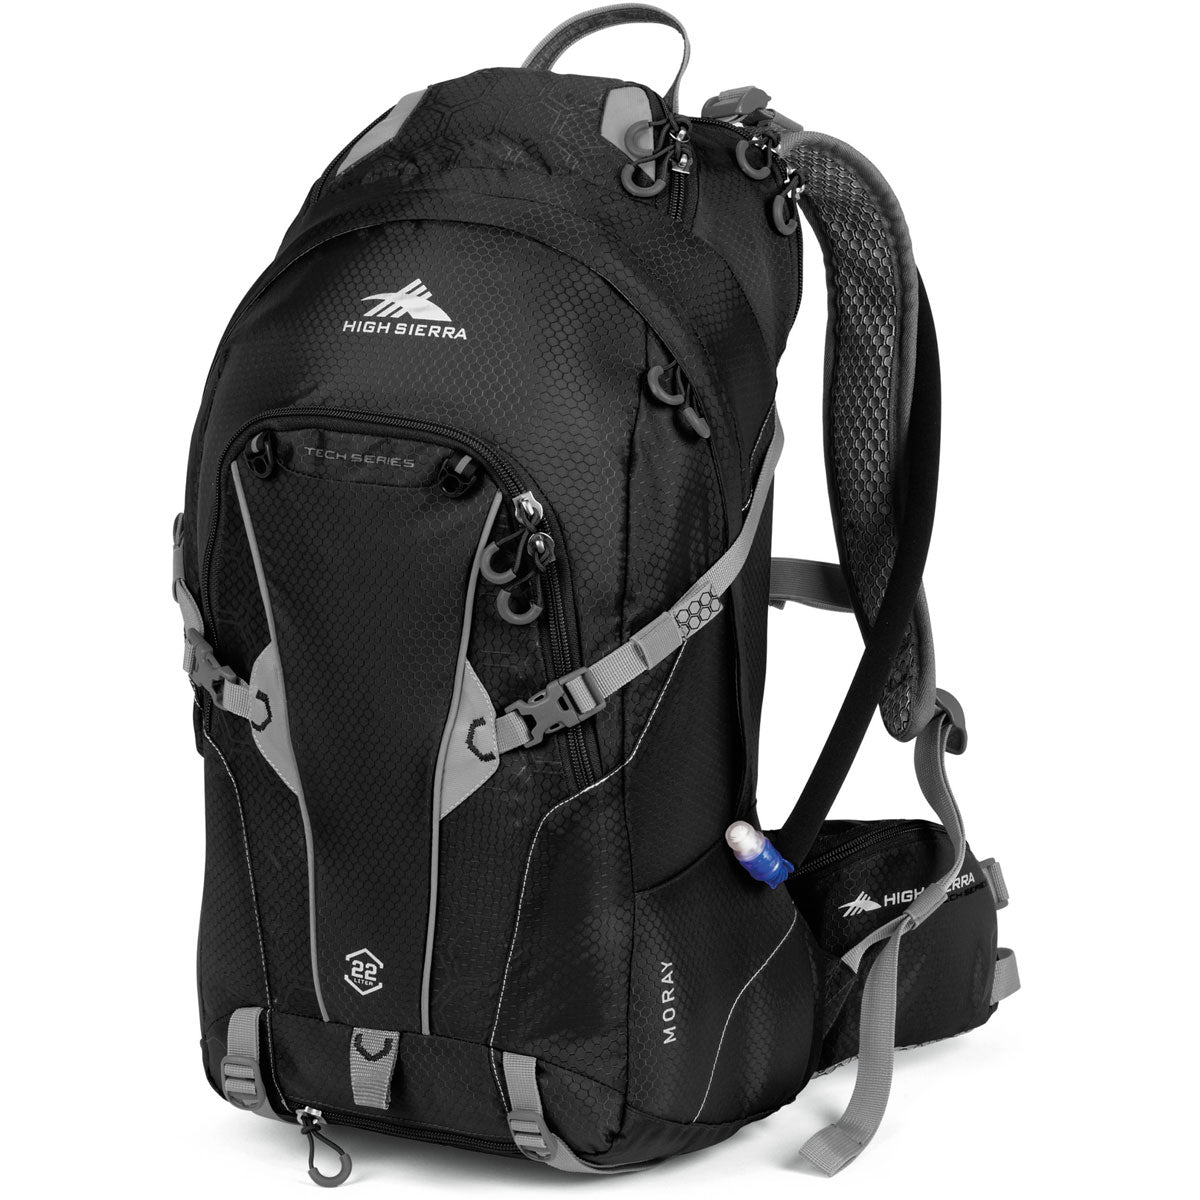 High Sierra Tech 2 Moray 22 Hydration Pack